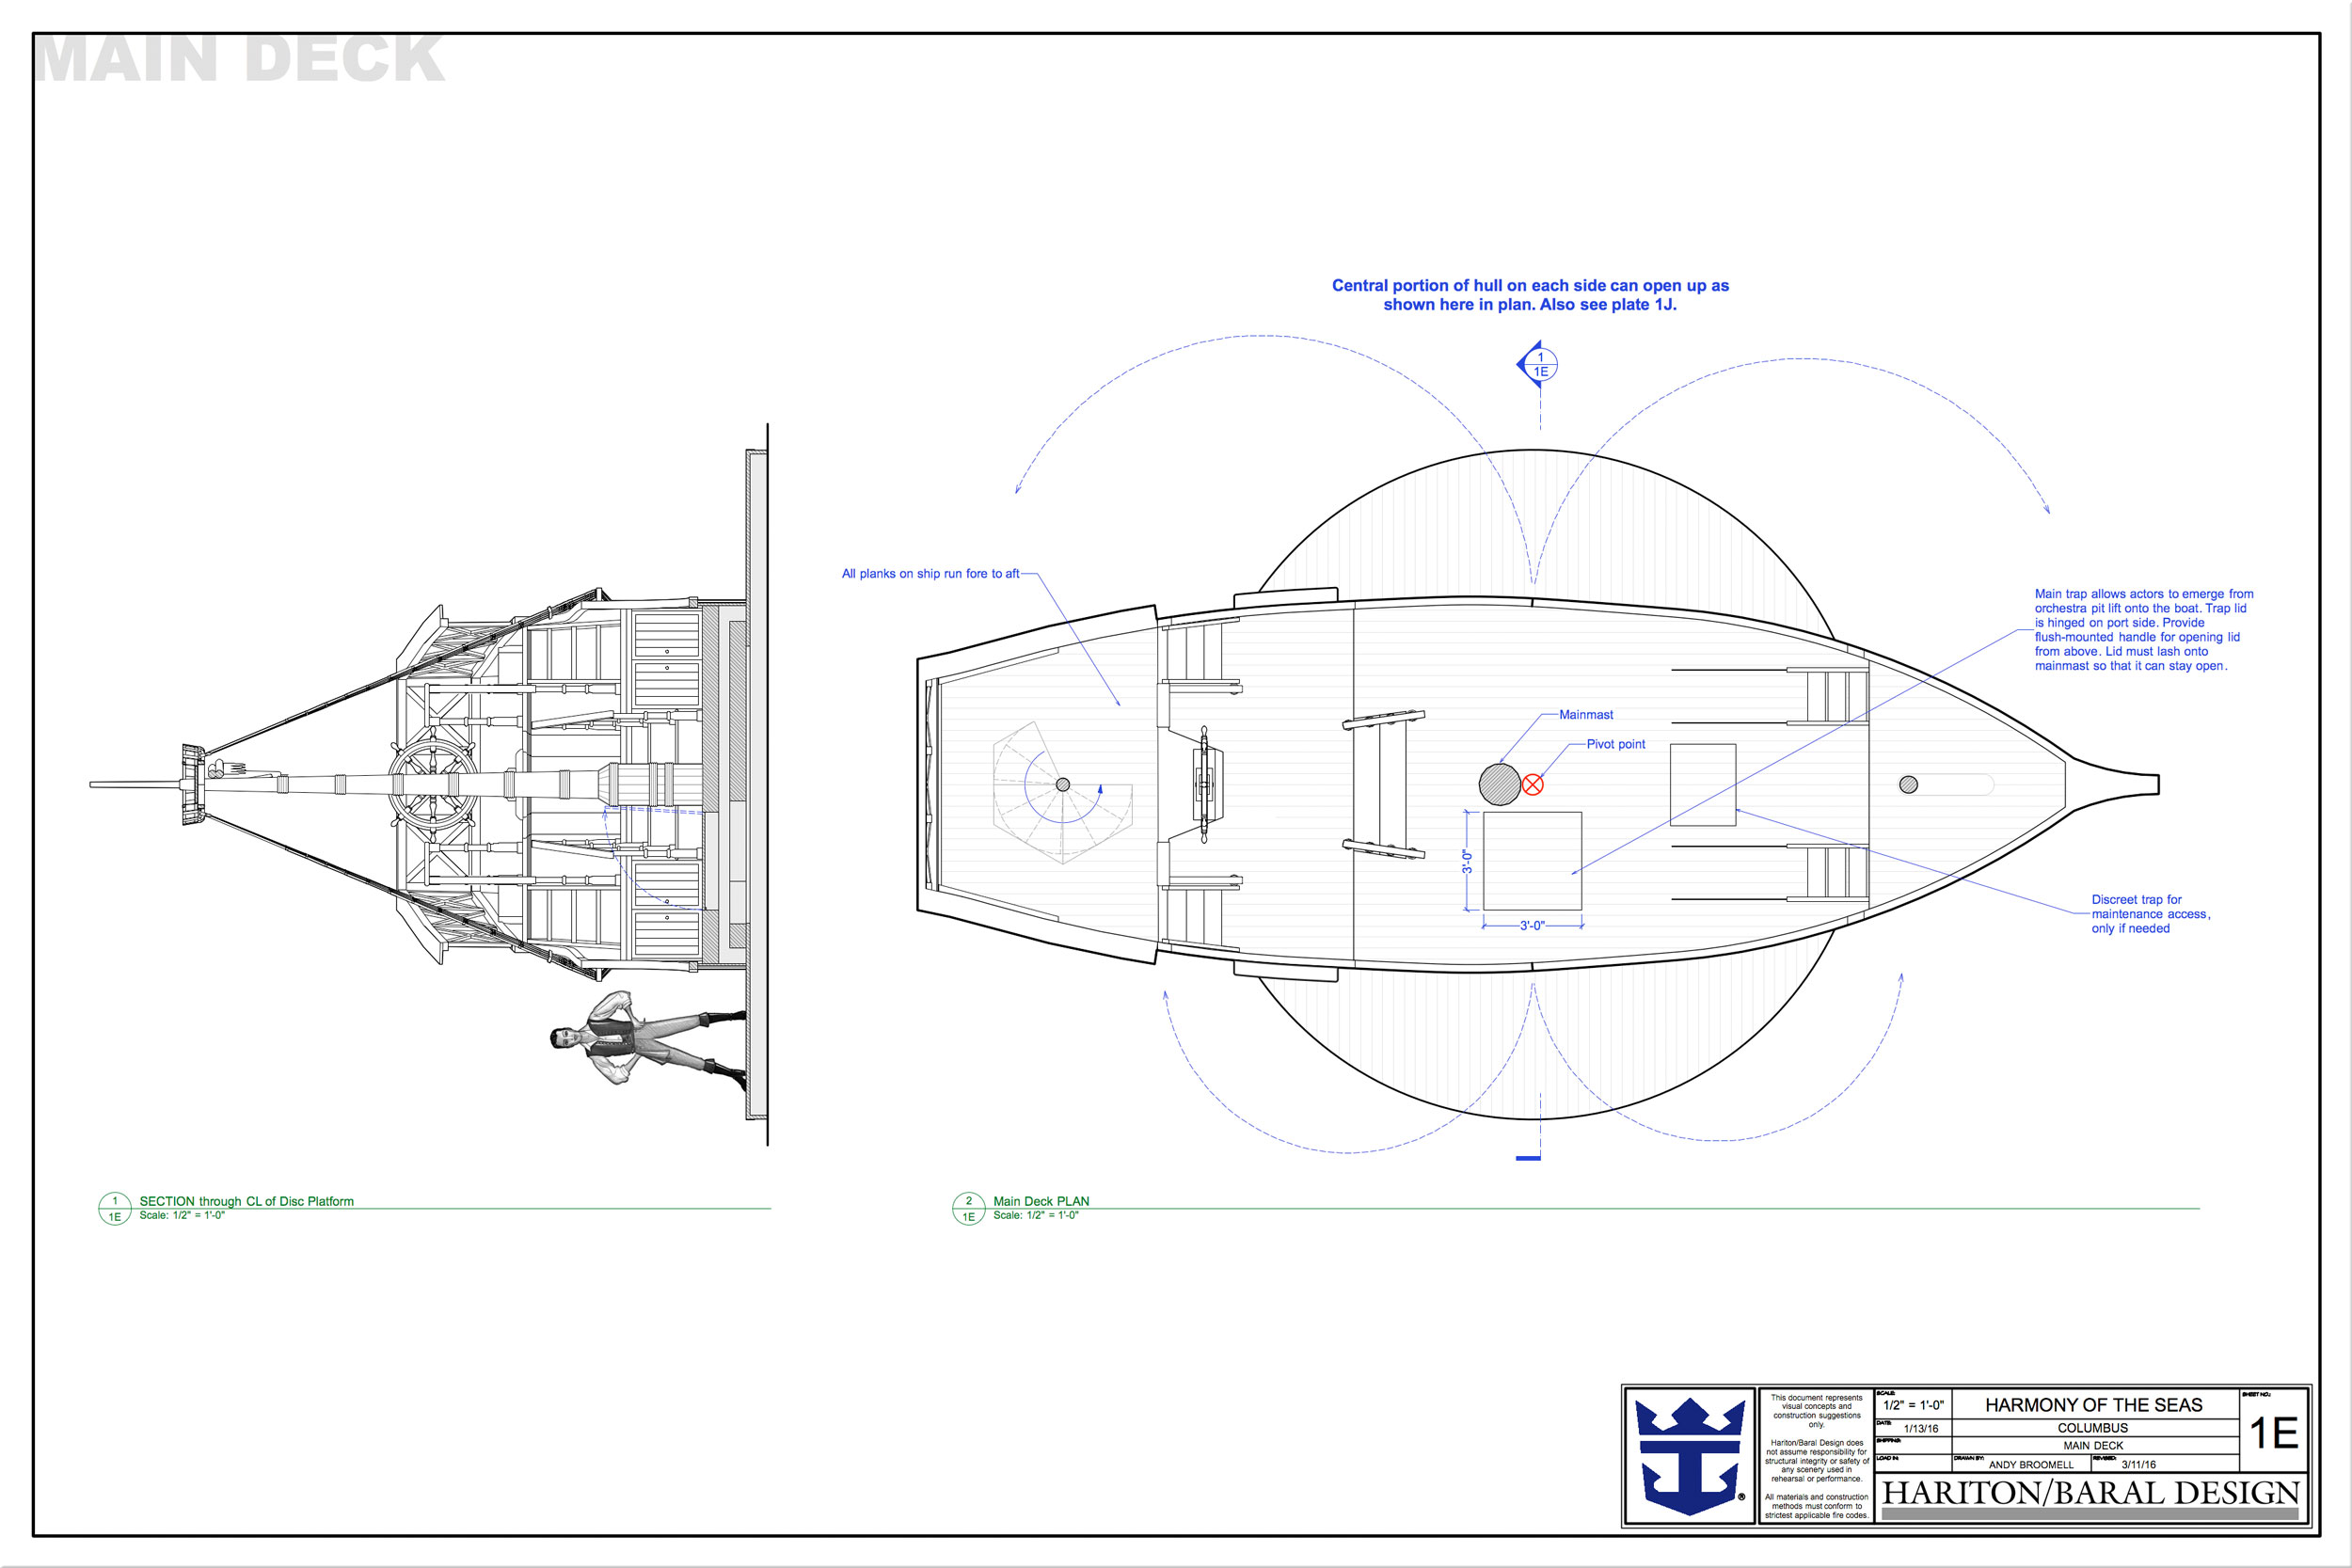 andy-broomell-drafting-columbus5-musical-vectorworks-scenic-design-scenery-plans-sailing-ship.jpg